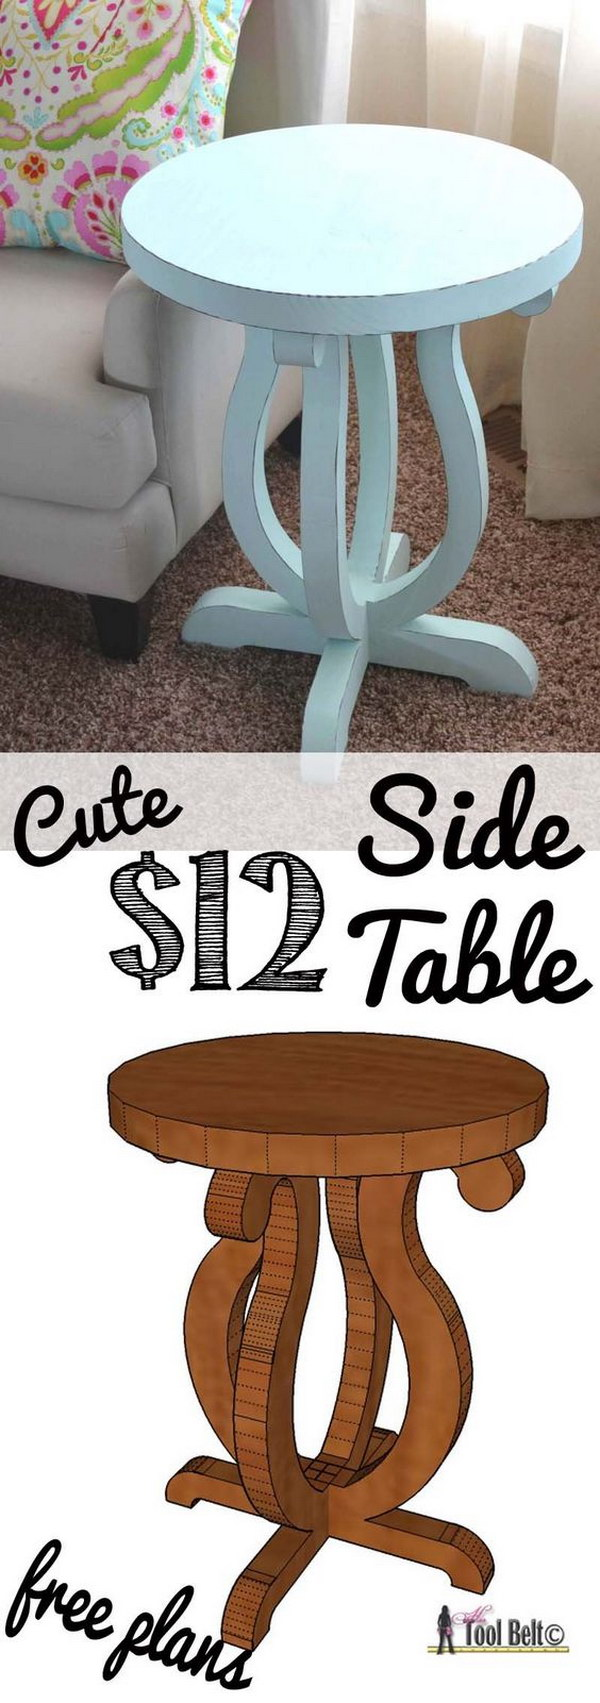 diy side table ideas with lots tutorials gold accent decor curvy pottery barn rustic pedestal banquet tablecloths home ping sites marble plant stand target pouf dining furniture